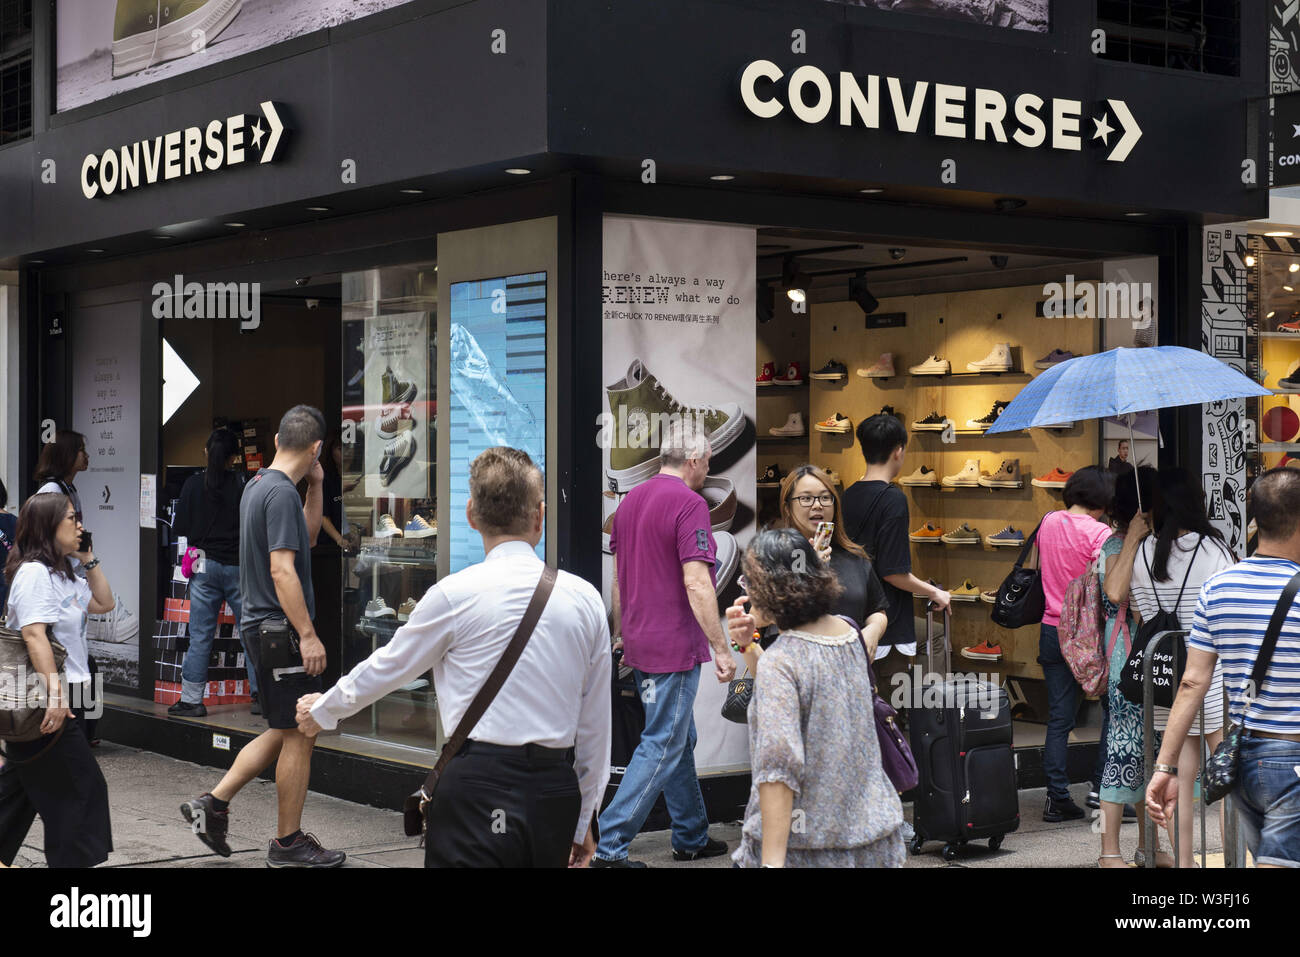 converse magasin outlet